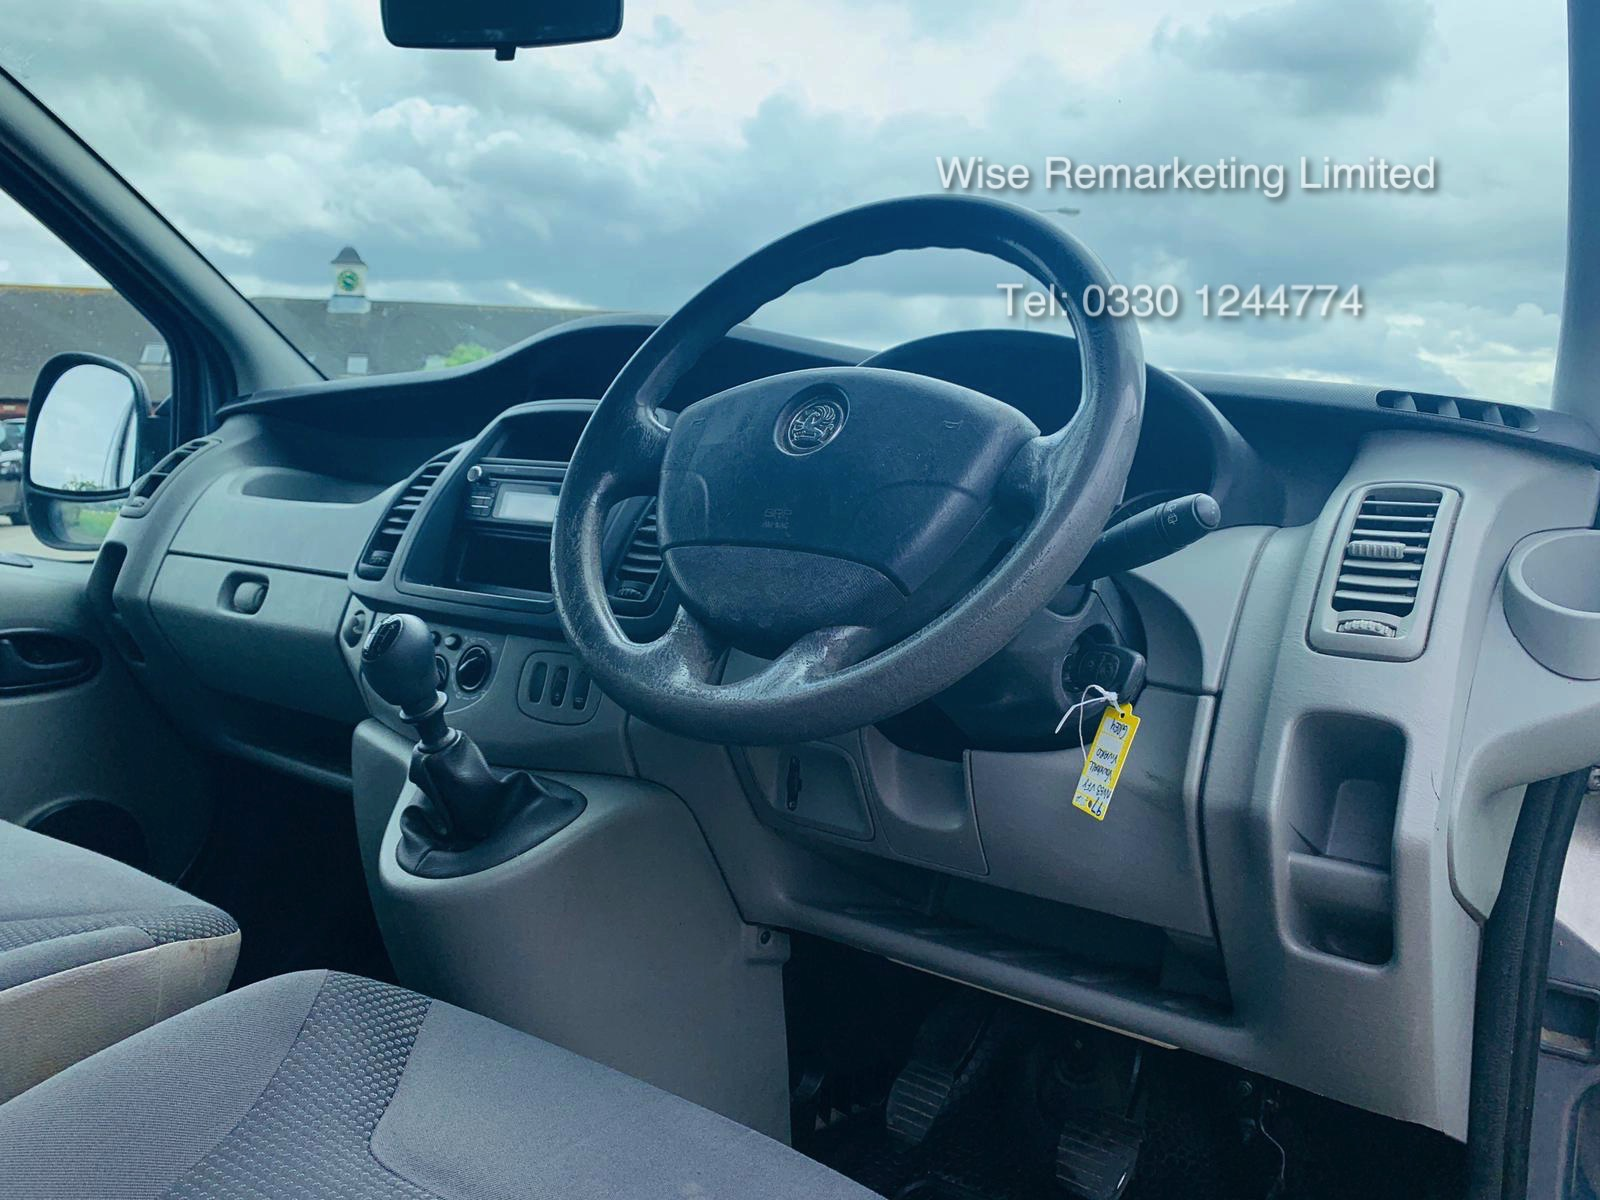 Vauxhall Vivaro 2.0 CDTI 2900 Minibus - 2014 Model - Wheel Chair Access -1 Owner From New -History - Image 17 of 21